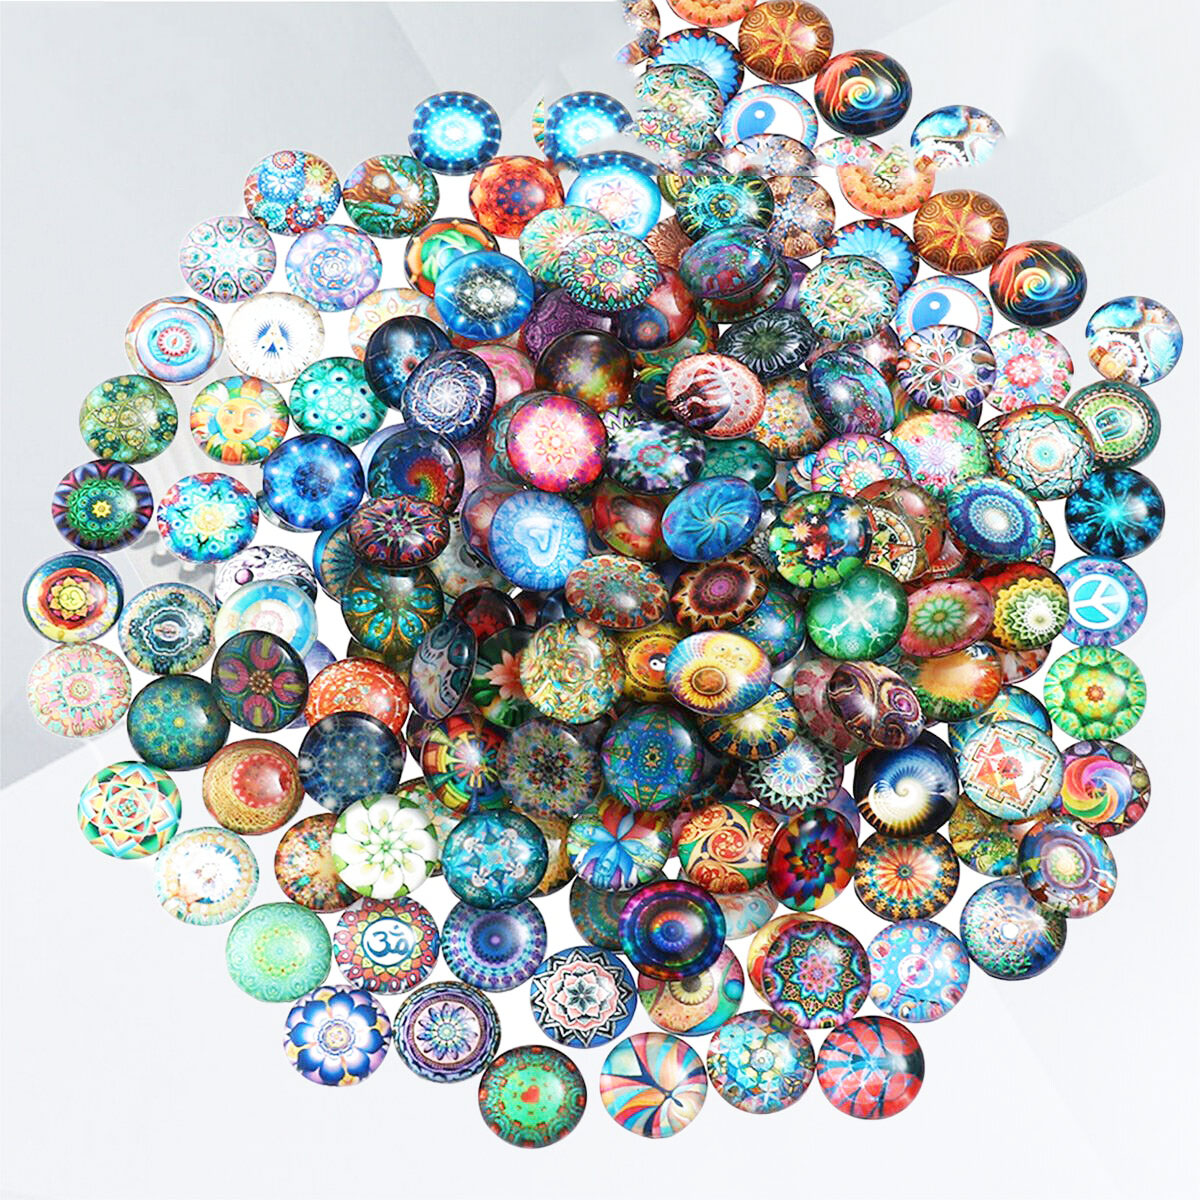 Mixed Round Mosaic Tiles Crafts Glass Supplies for Jewelry Making Game glass beads suitable for making jewelry works in jewelry